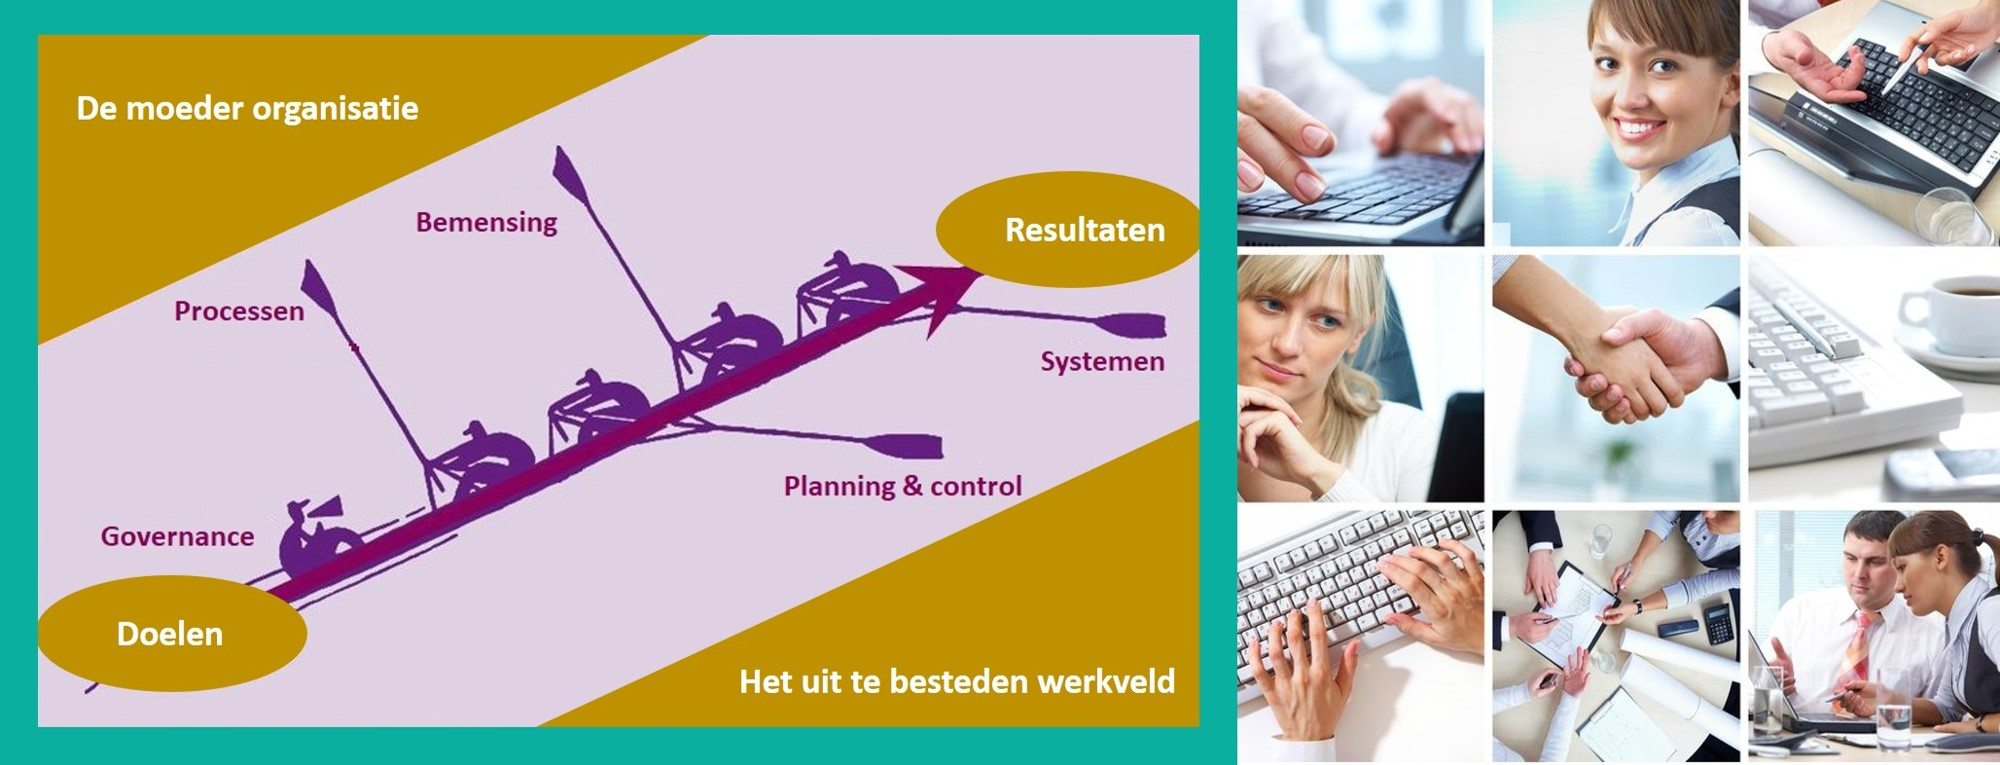 Implementatieproces van Demand Management